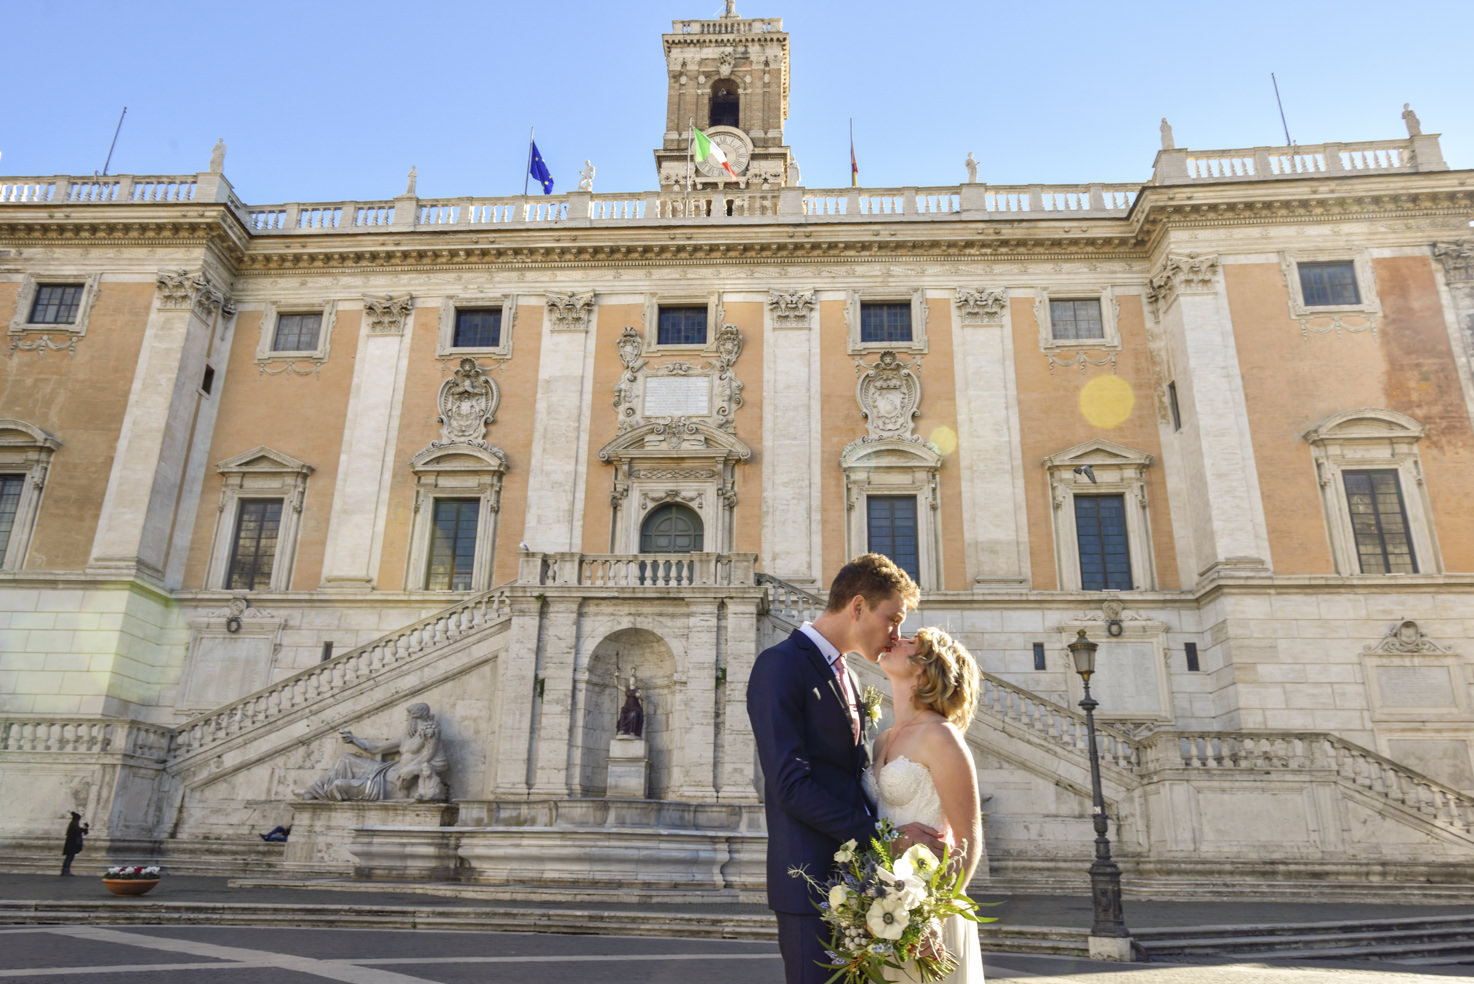 Bridal couple kissing in front of Campidoglio Palace